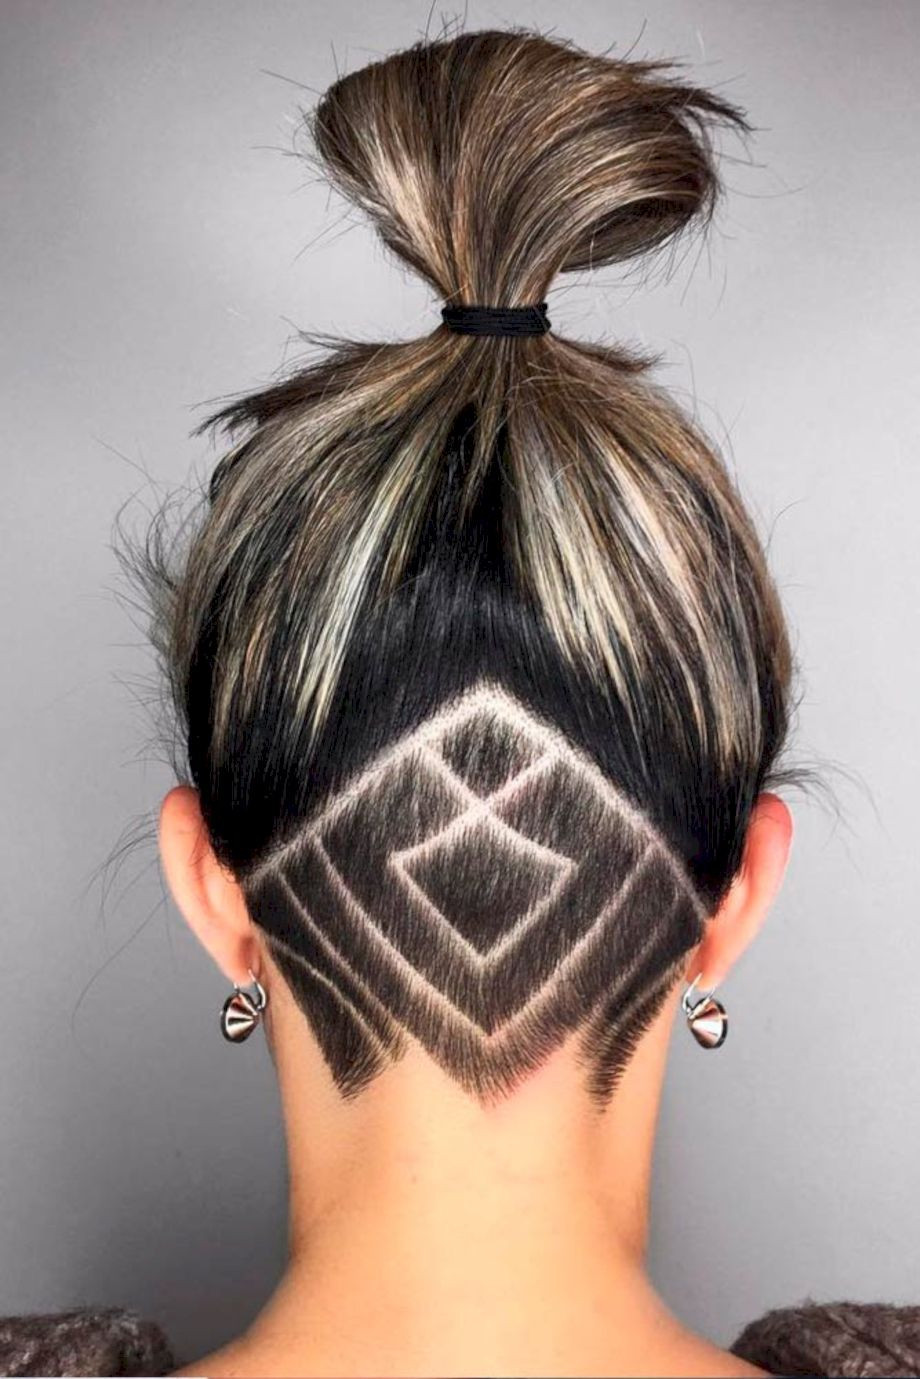 Girls Undercut Hairstyles  71 Lovely Undercut Hairstyle for Women Ideas Fashionetter